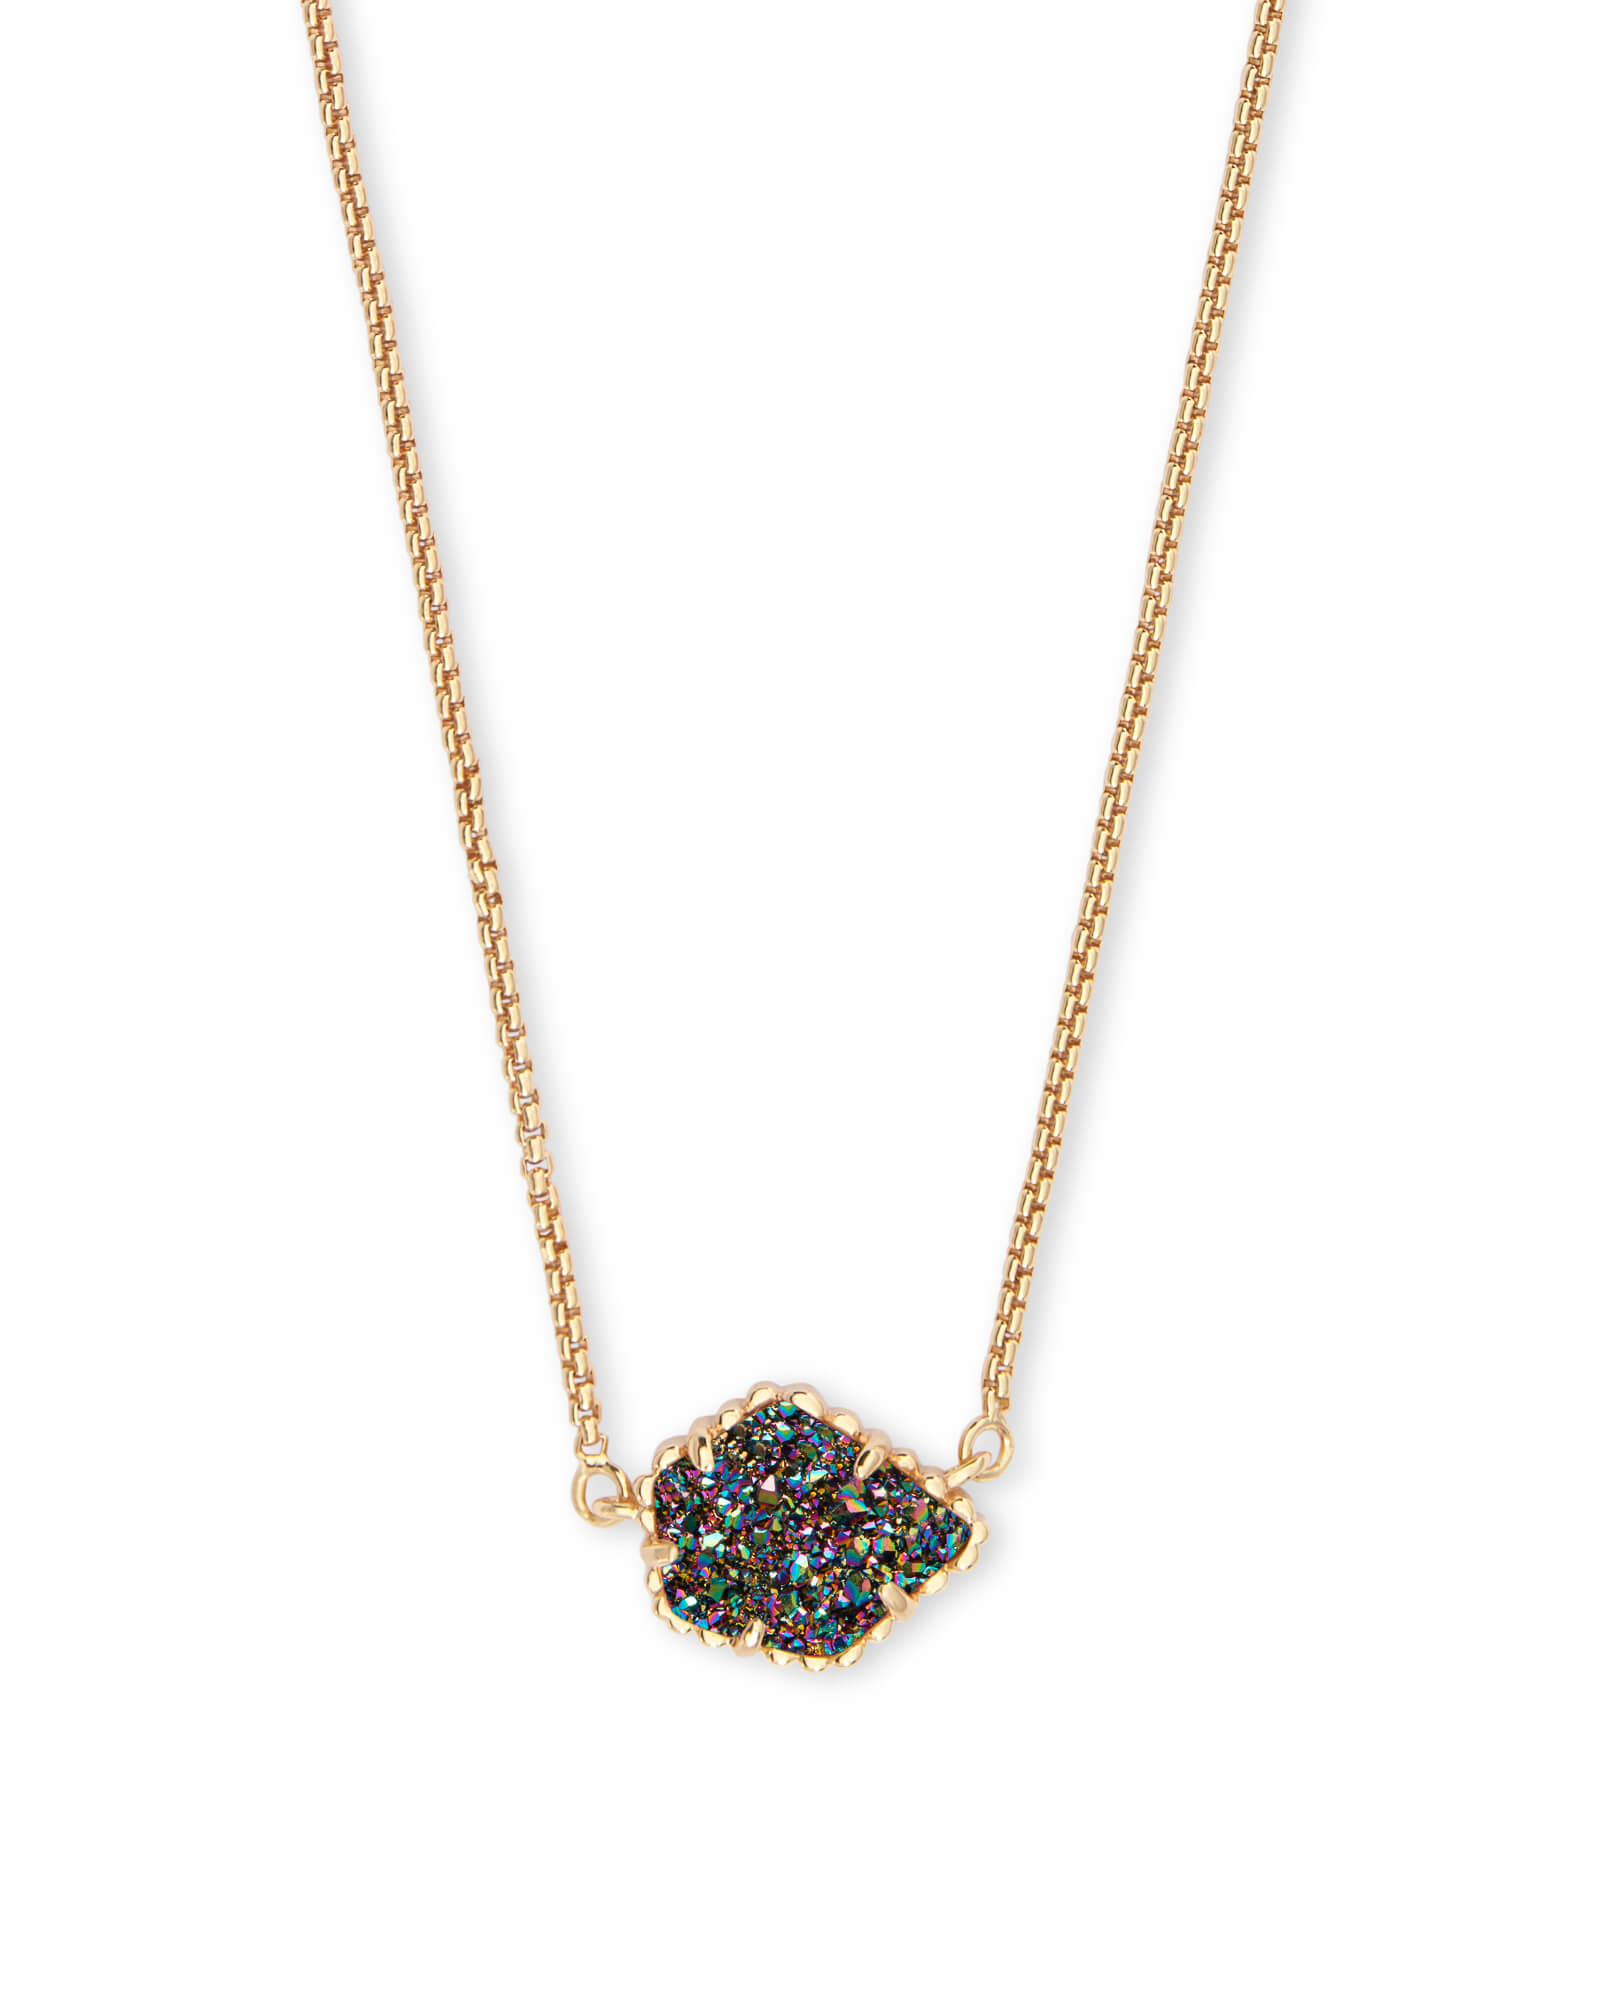 Tess Gold Pendant Necklace in Multicolor Drusy